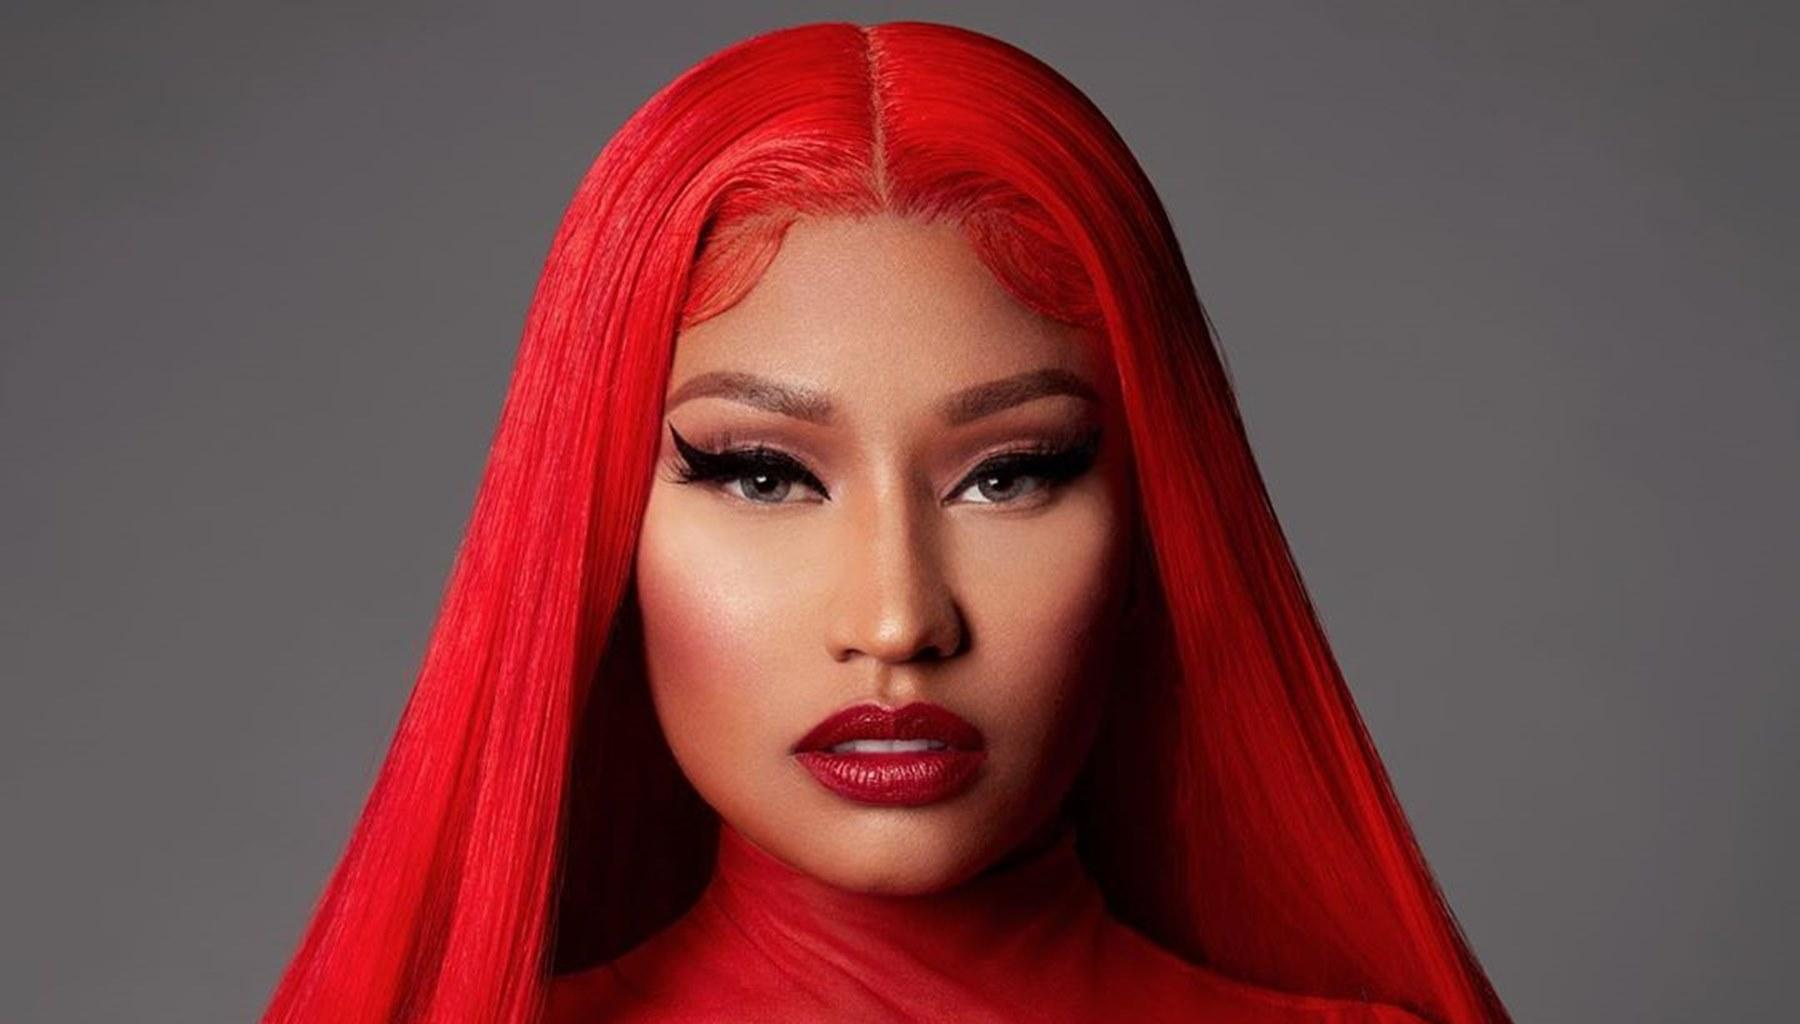 Nicki Minaj's Husband, Kenneth Petty, Stole The Show For All The Wrong Reasons -- The Femcee Is Still Defending Kenneth Petty